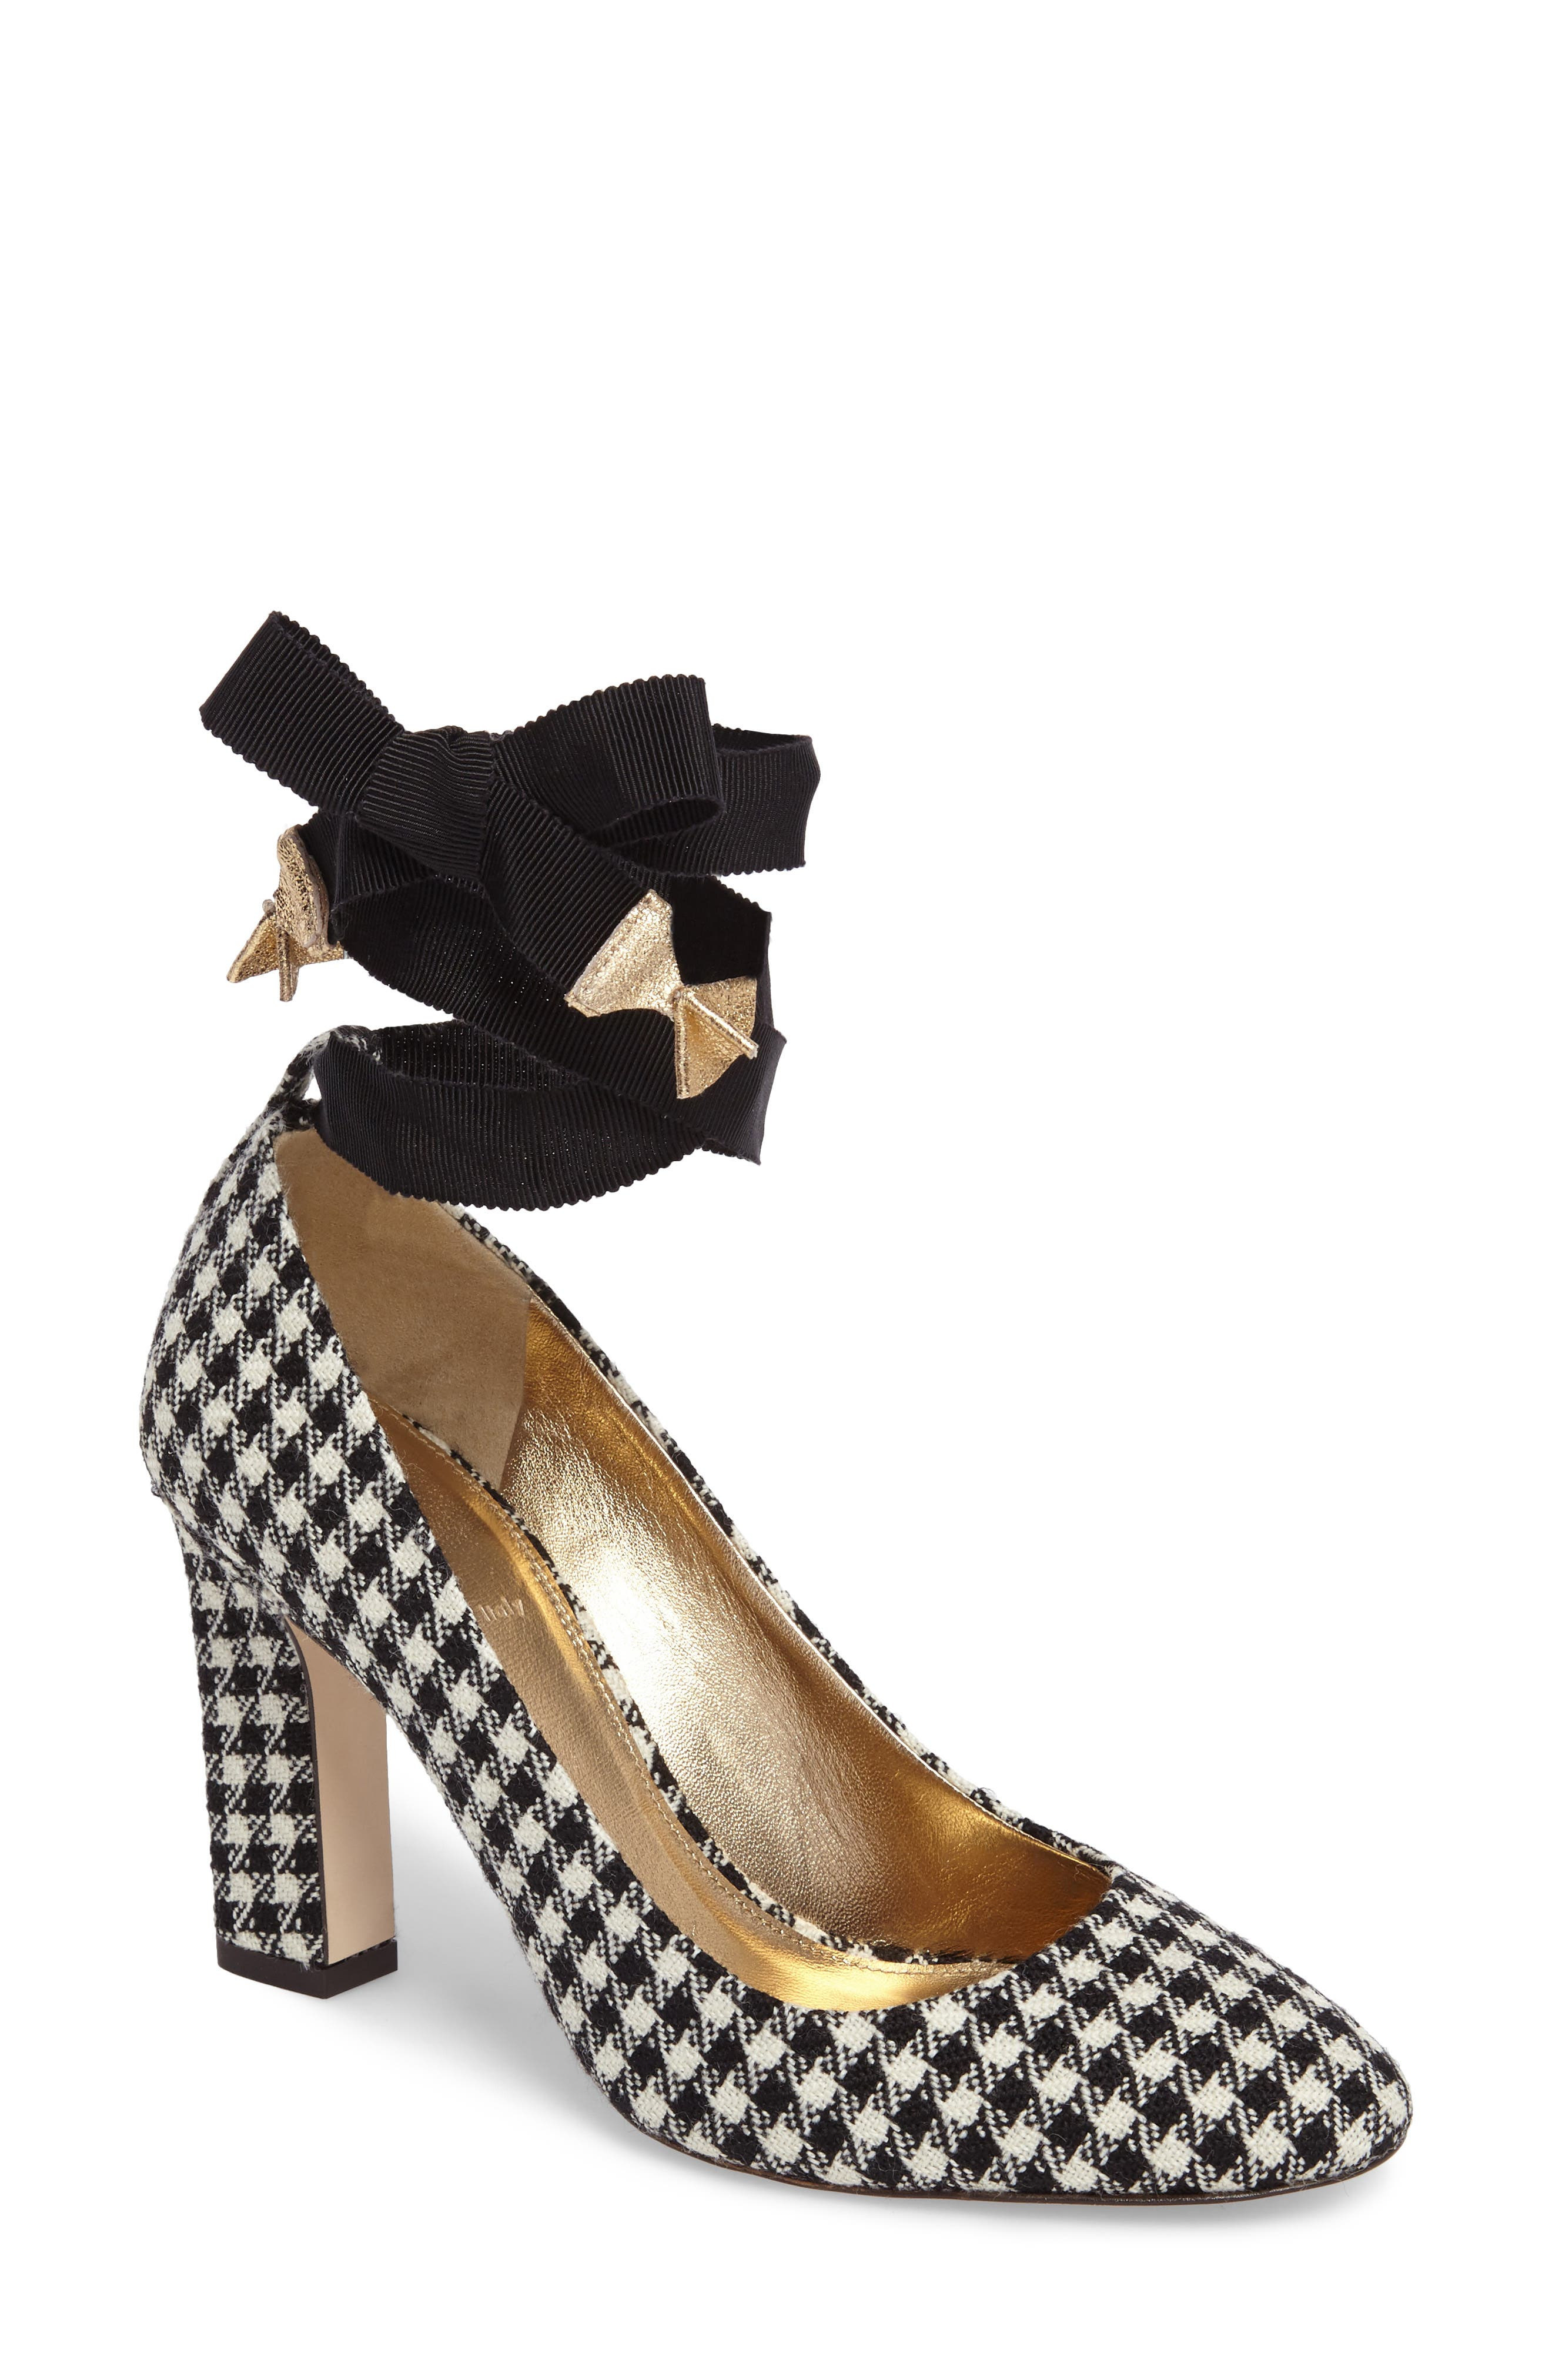 J. Crew Bell Ankle Tie Pump,                         Main,                         color, Black/ Ivory Fabric